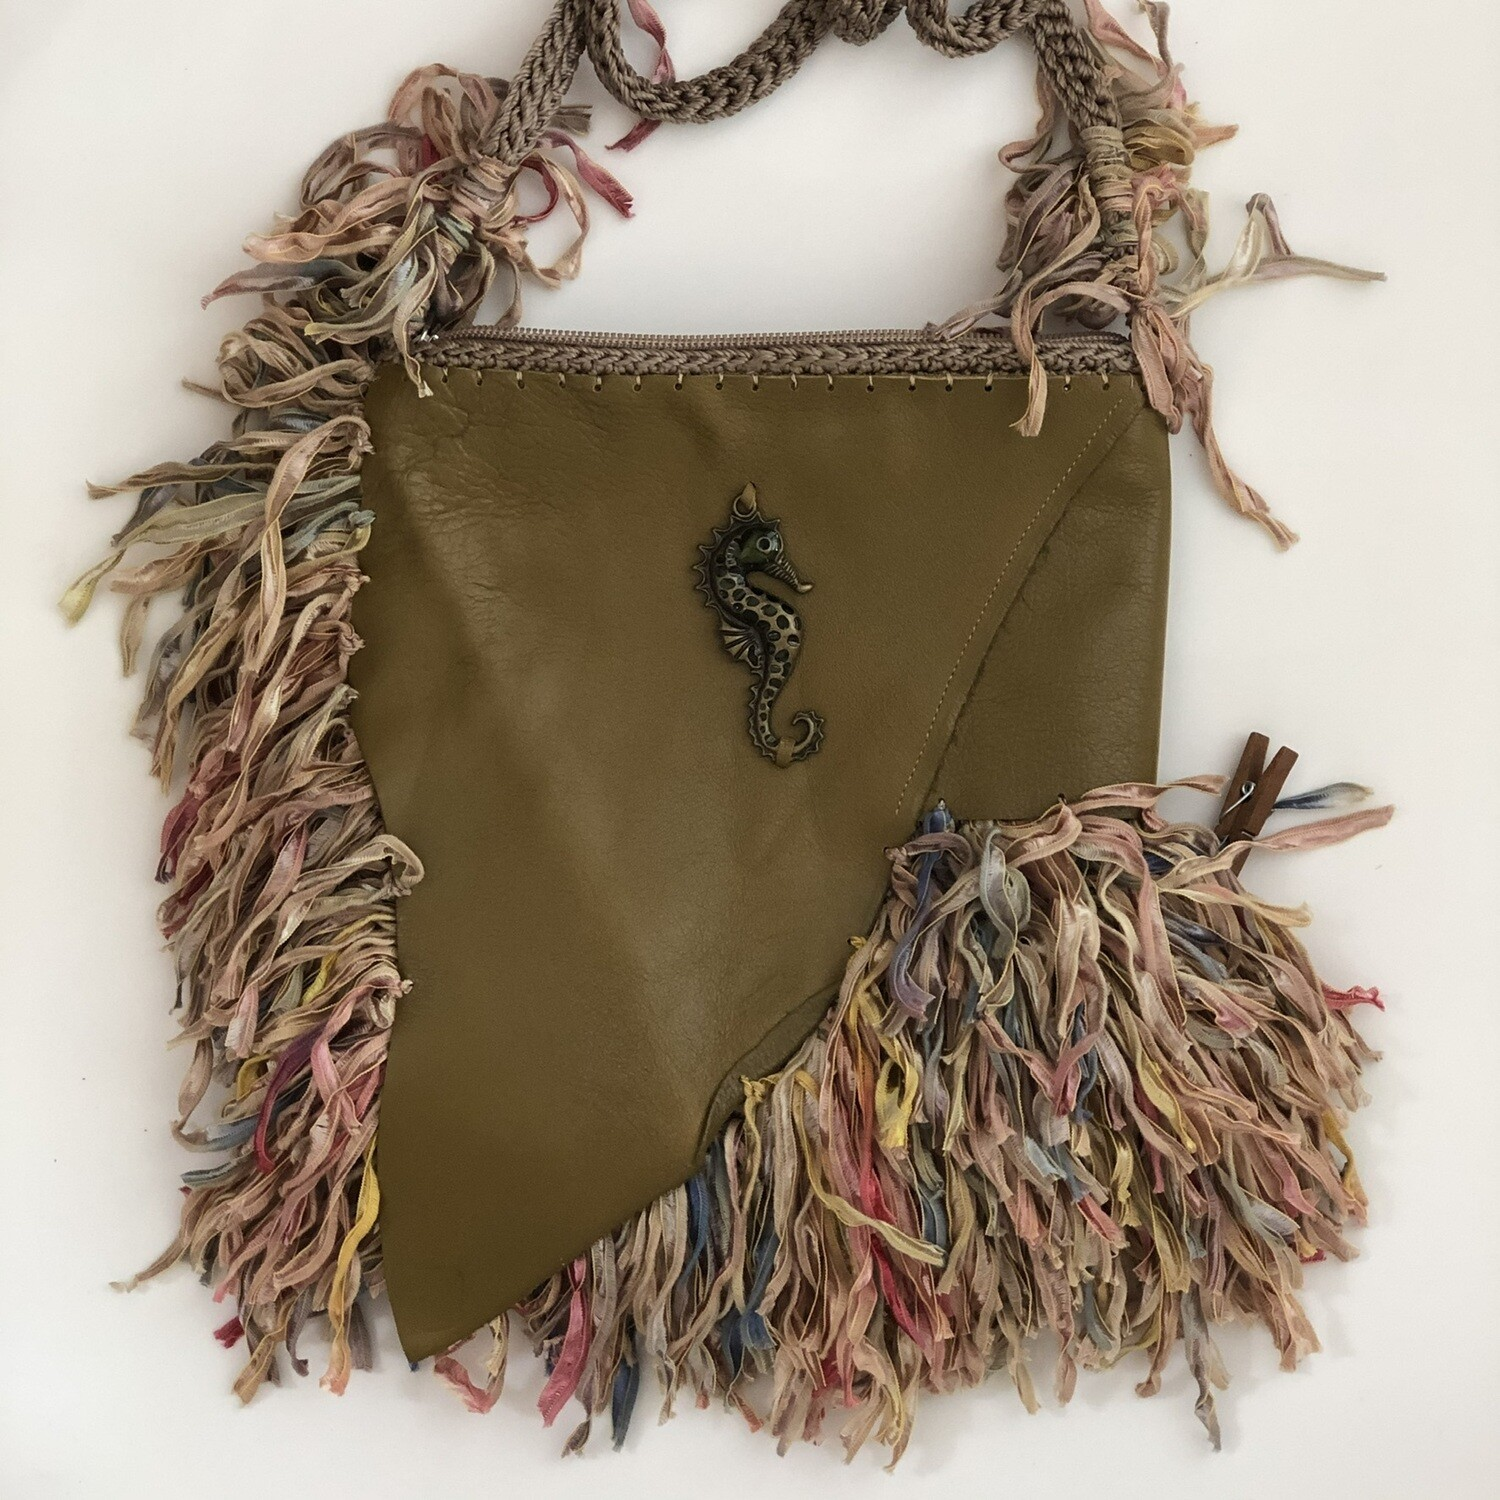 Olive Green Leather Seahorse Handbag